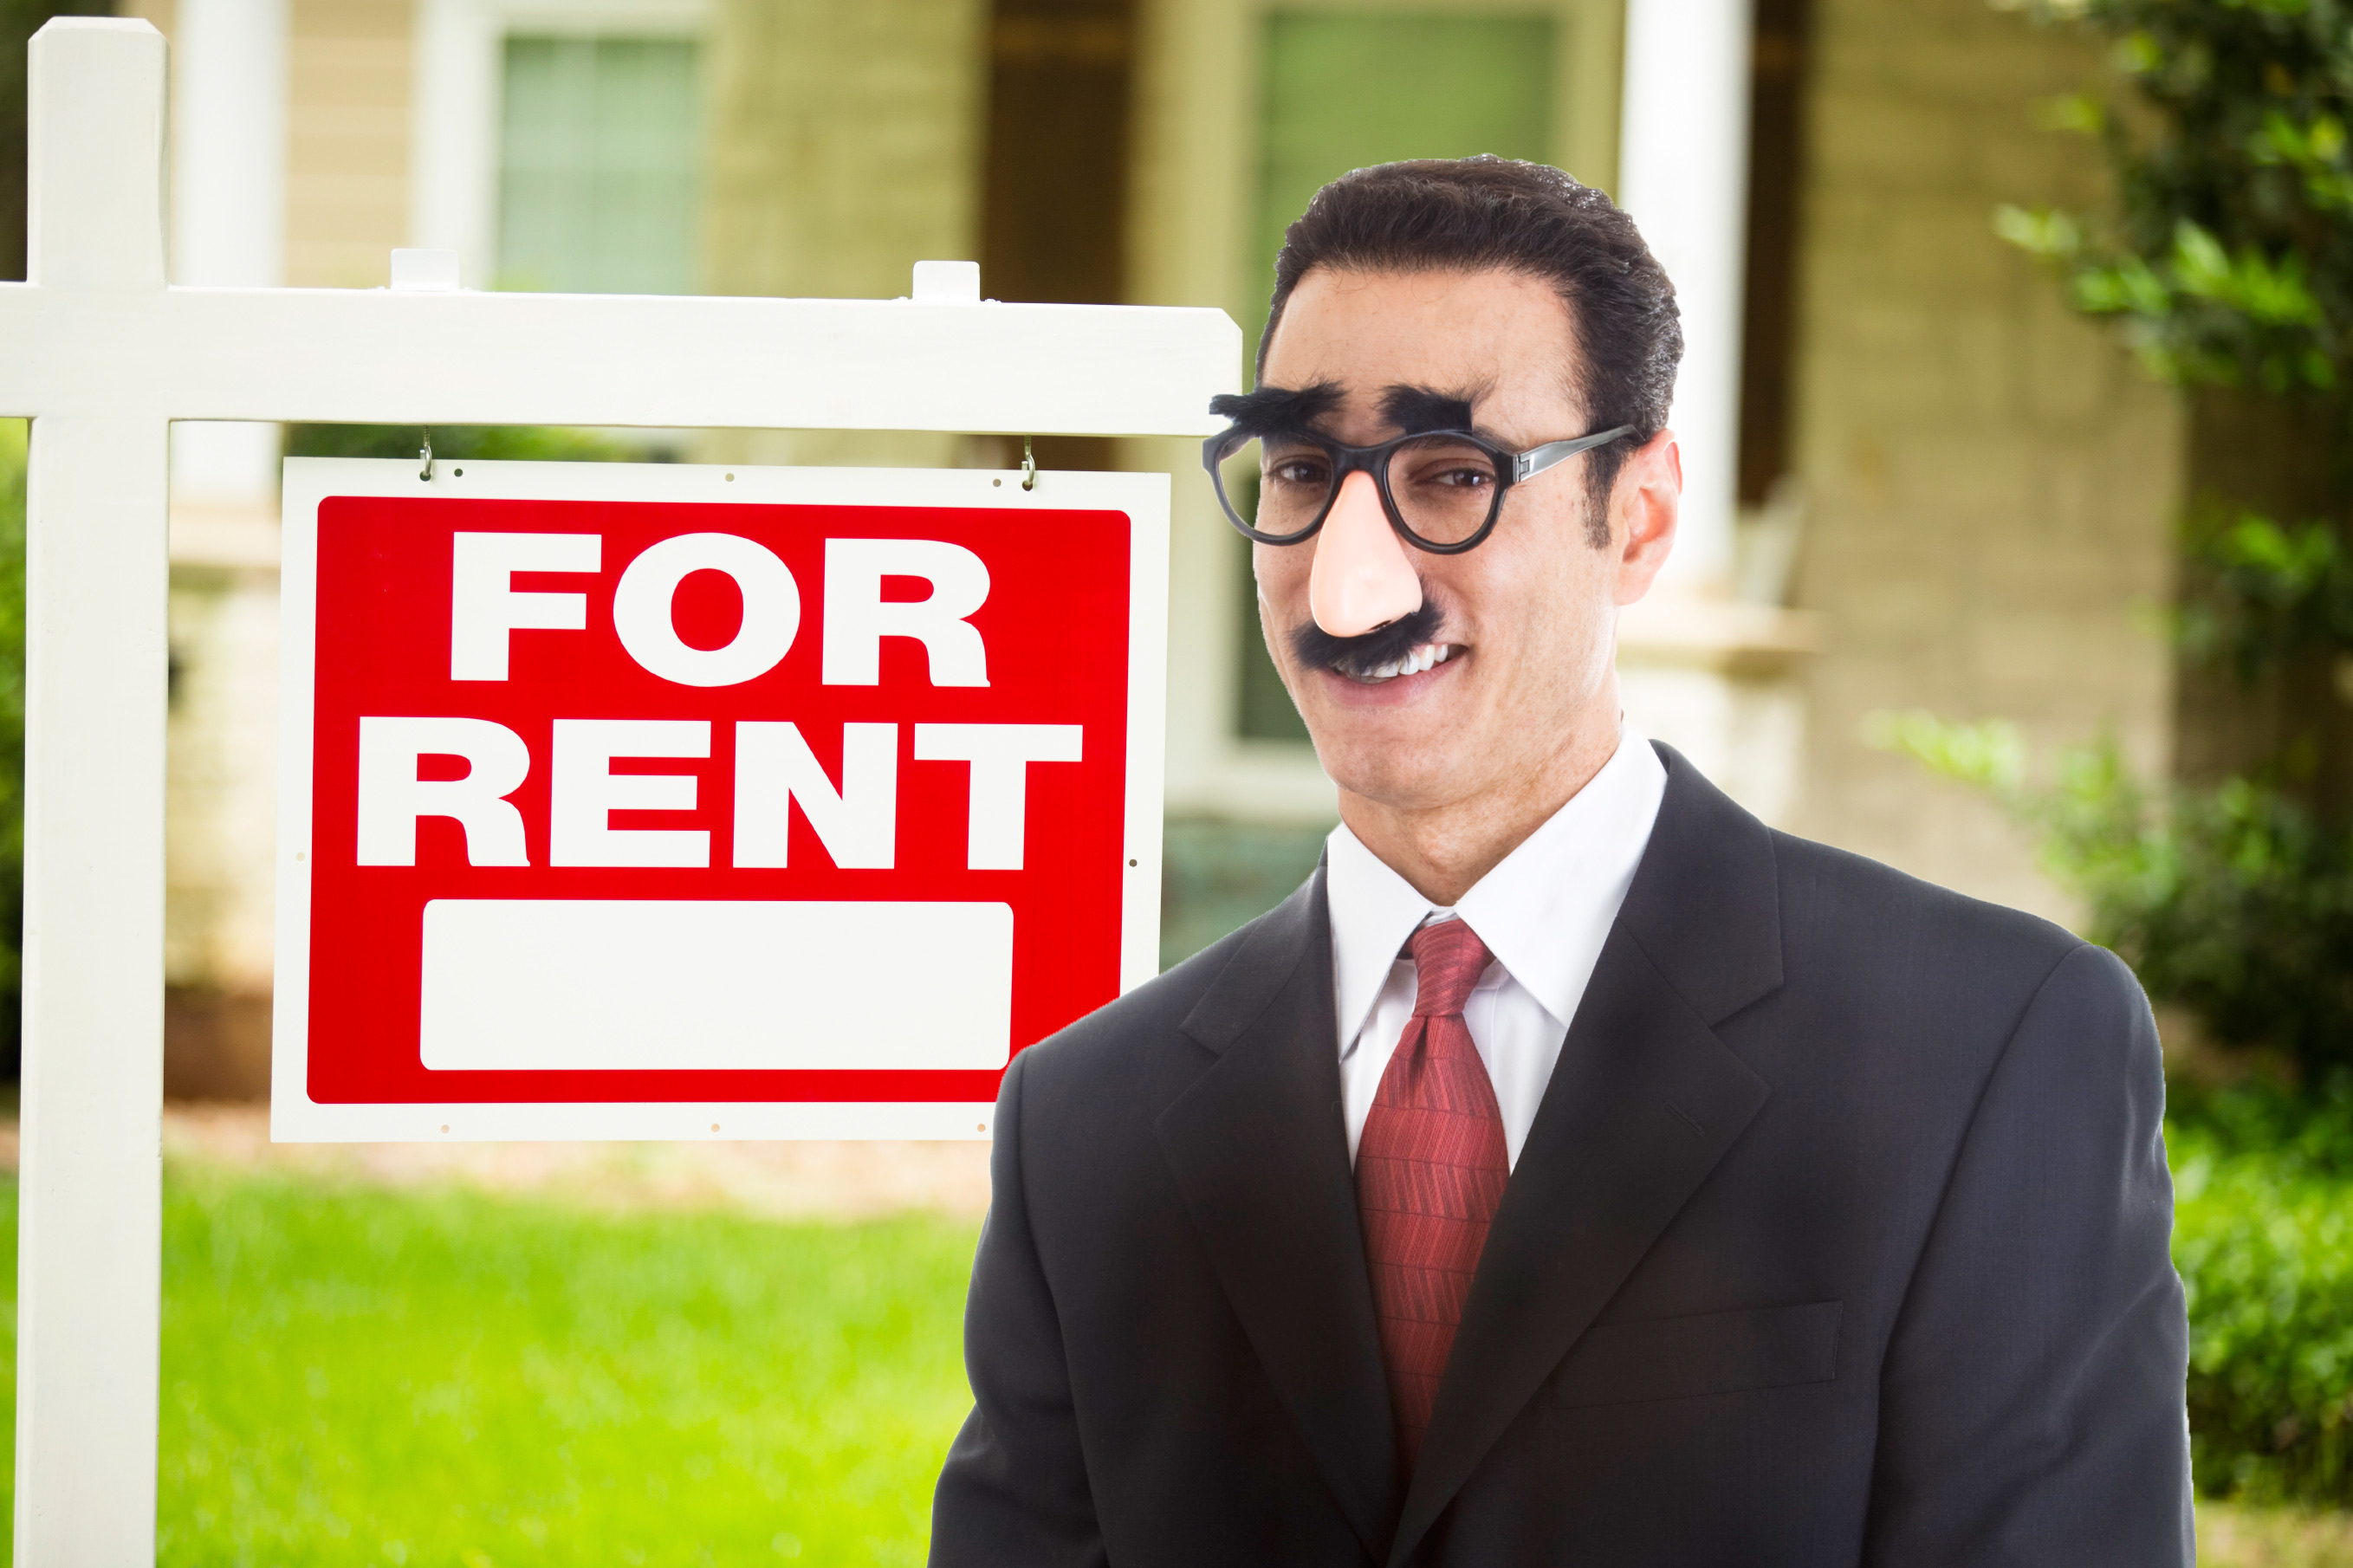 Fake real estate agent